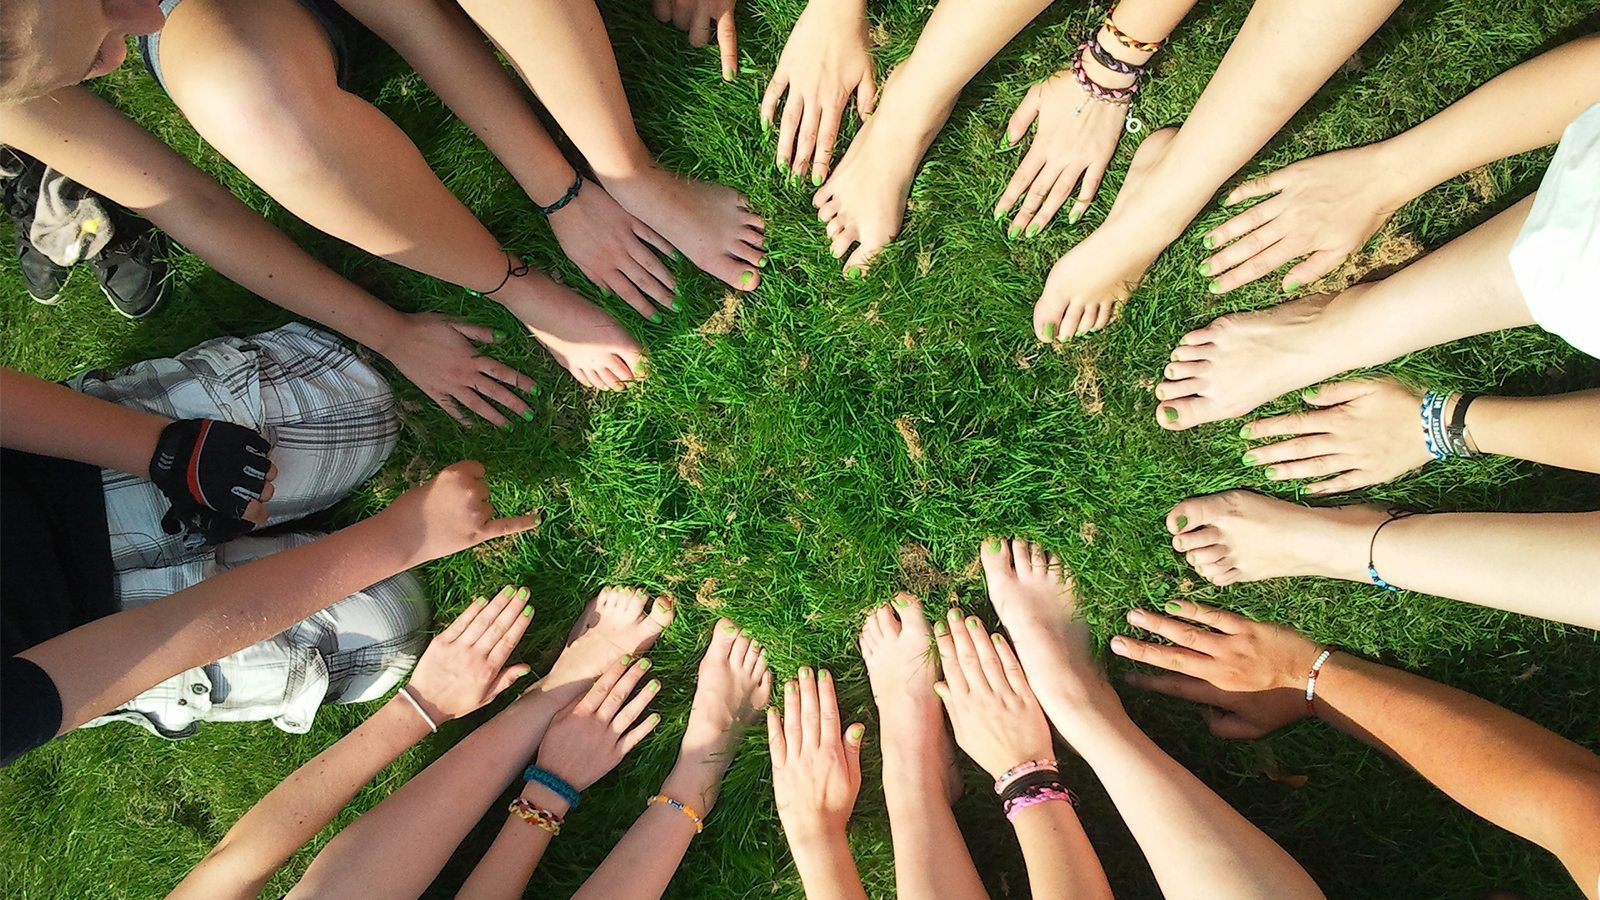 Image: people placing their hands and feet in a circle